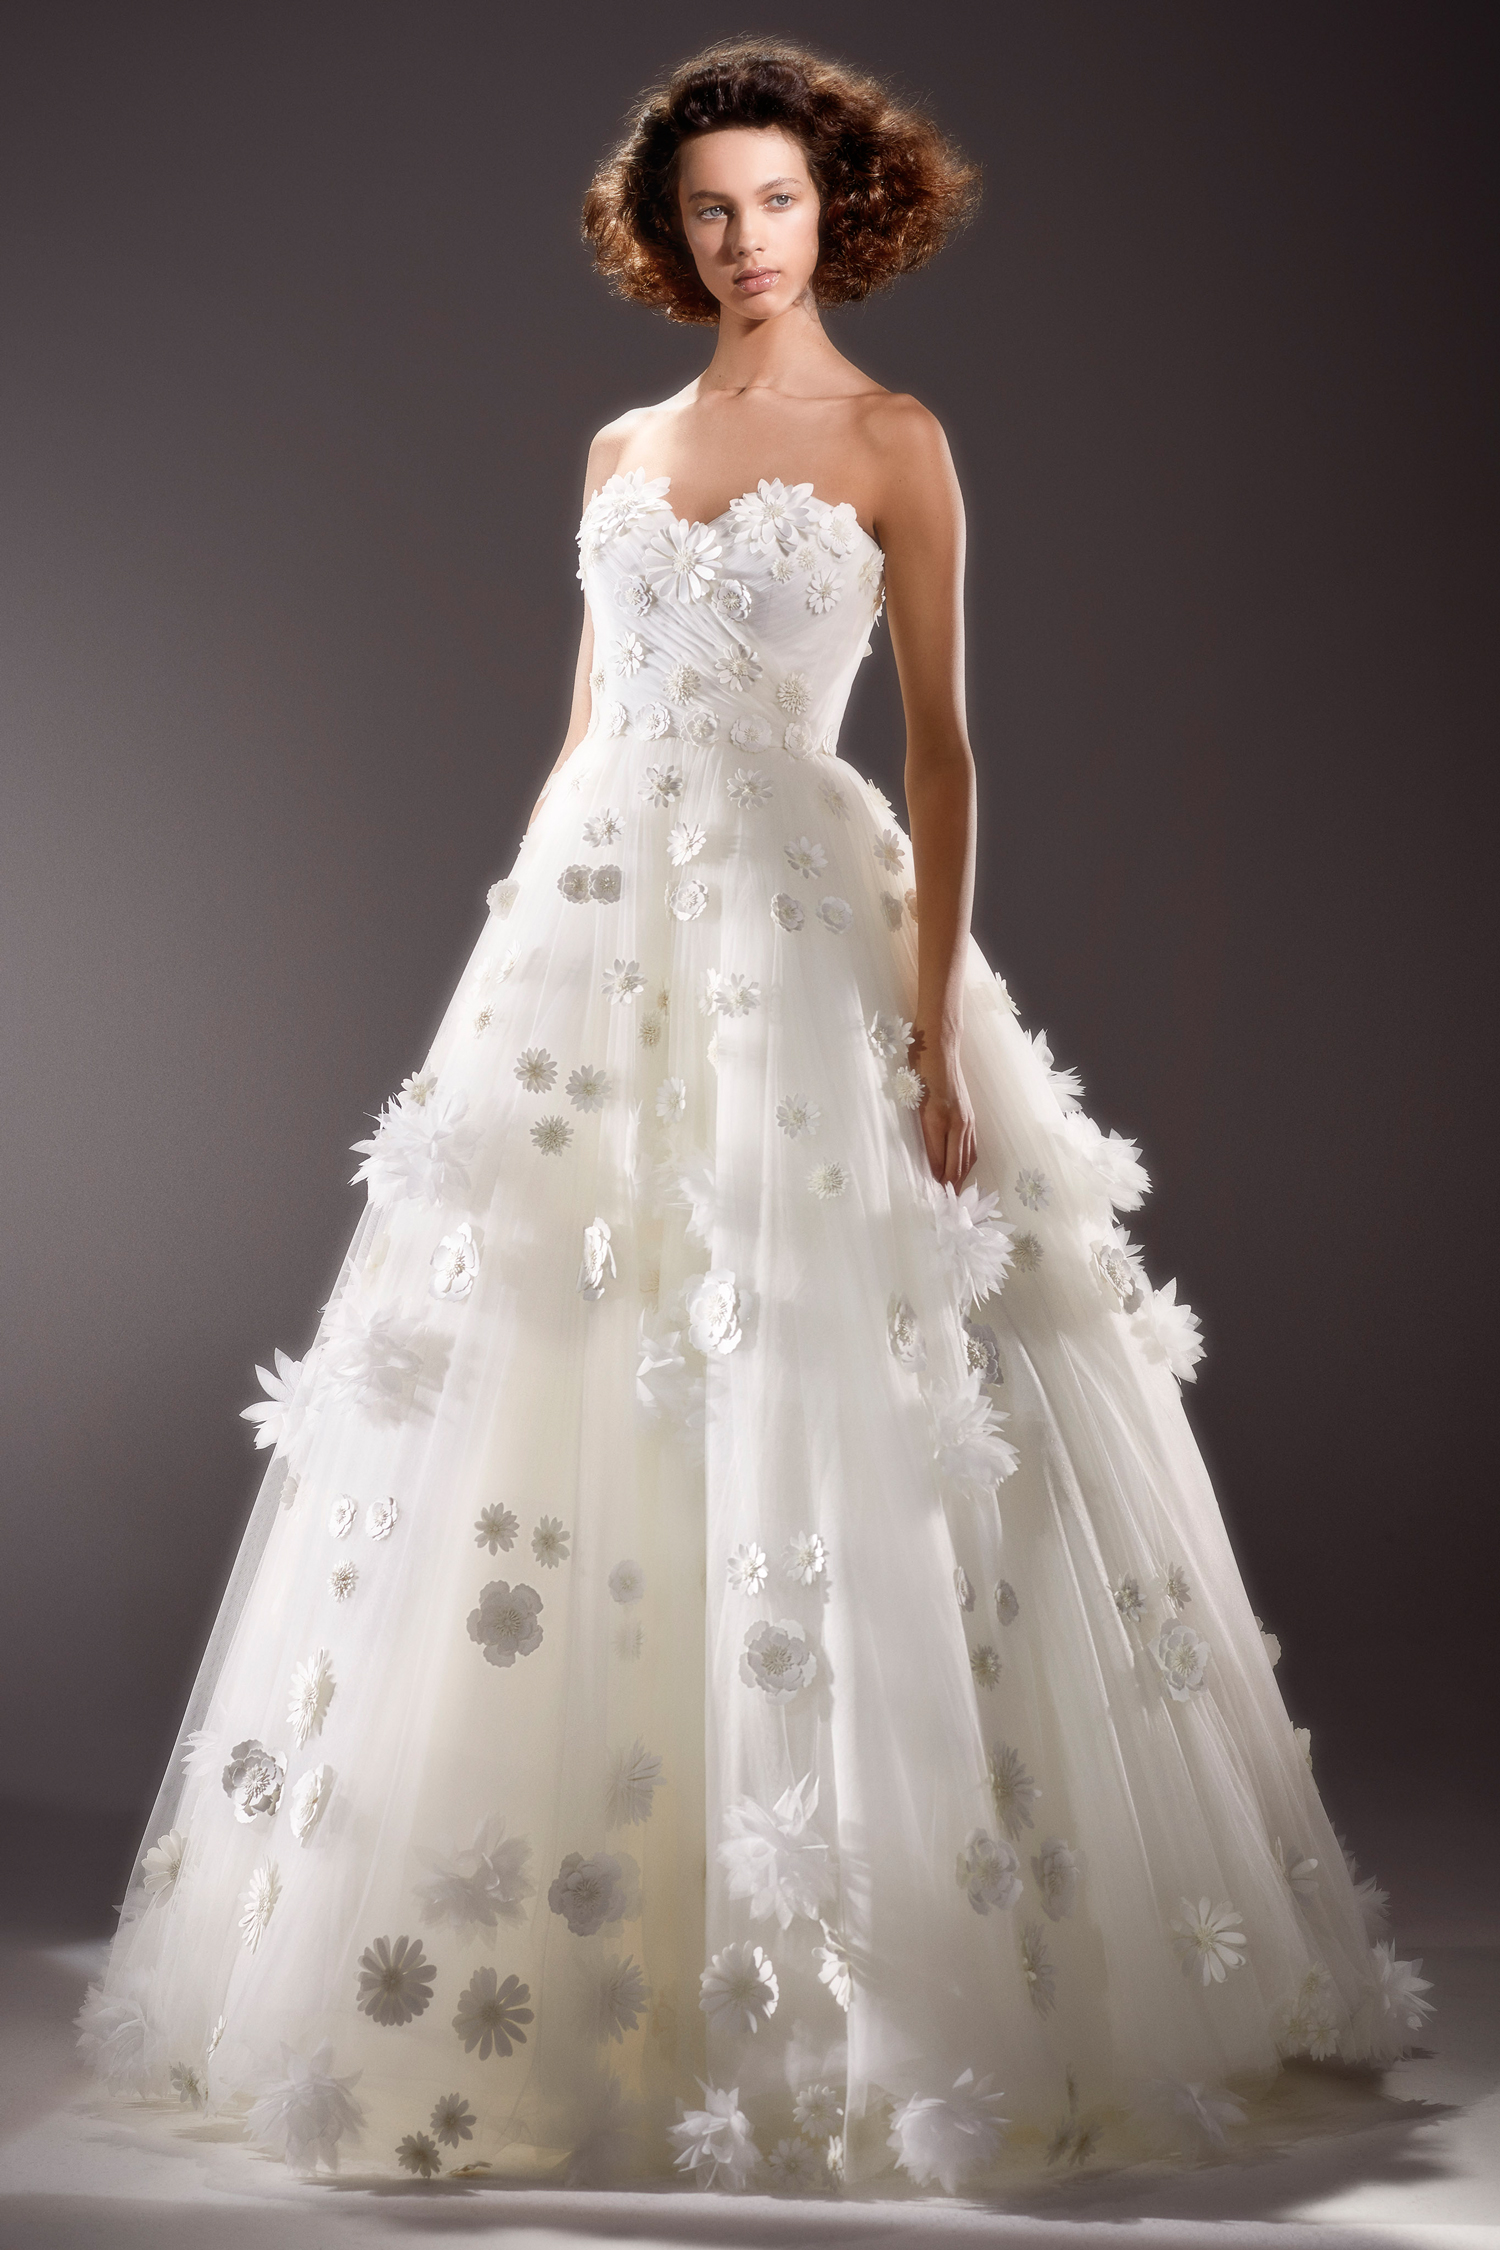 viktor and rolf strapless ballgown wedding dress with floral applique spring 2020